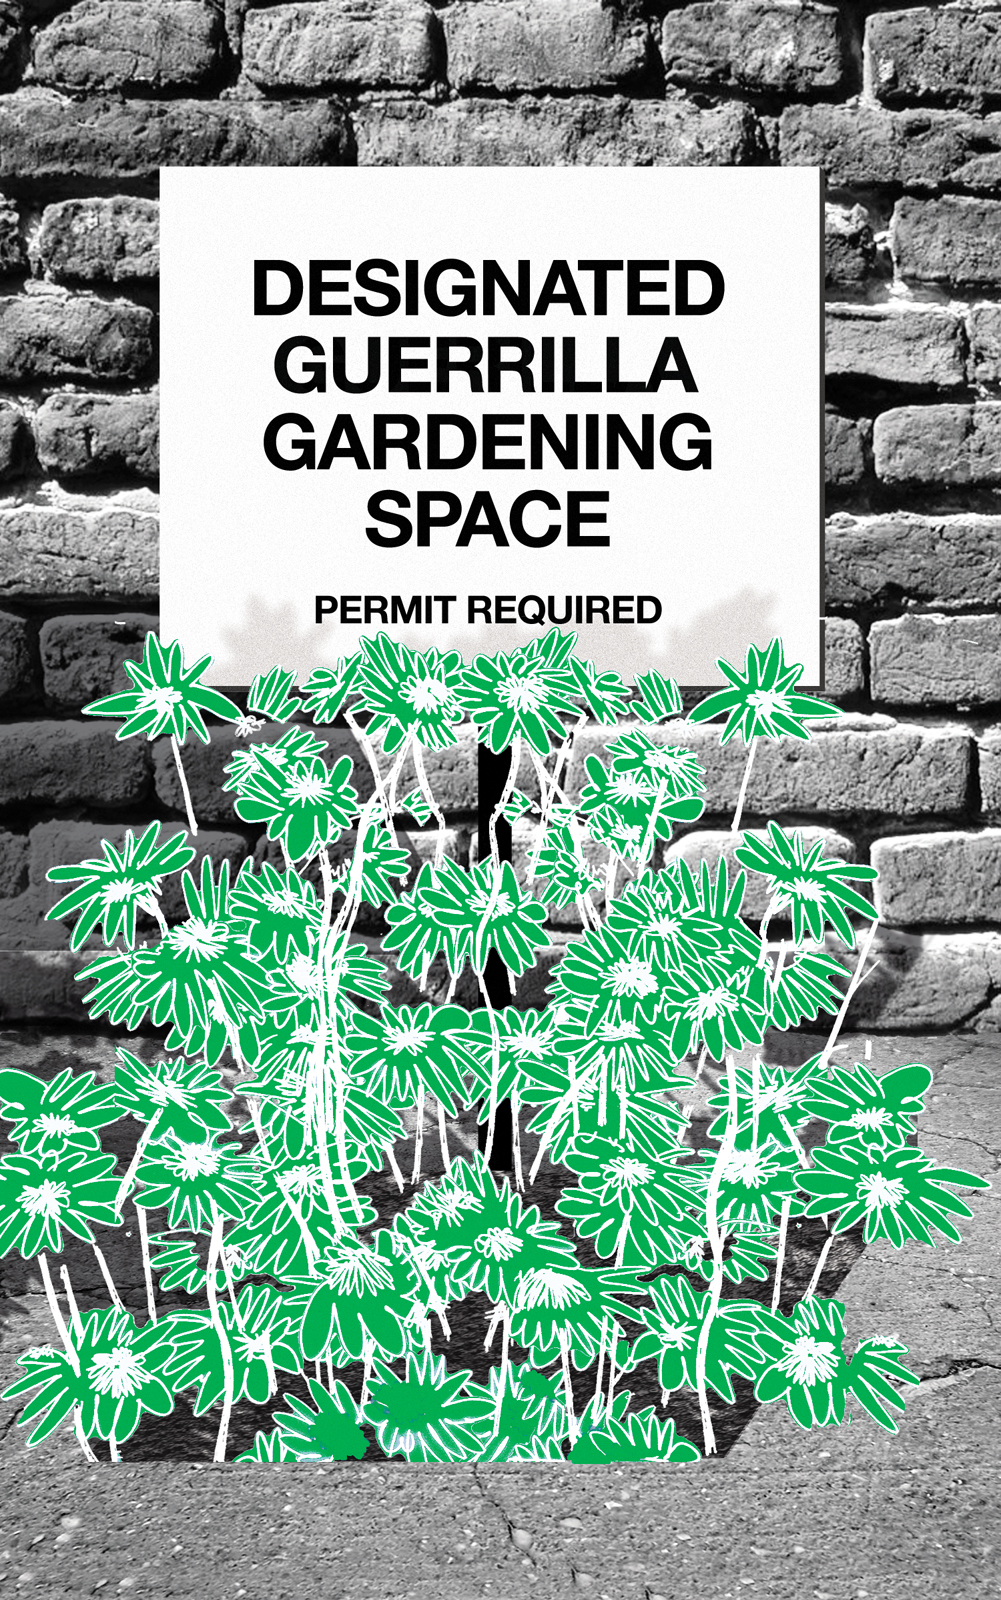 design activism On Guerilla Gardening